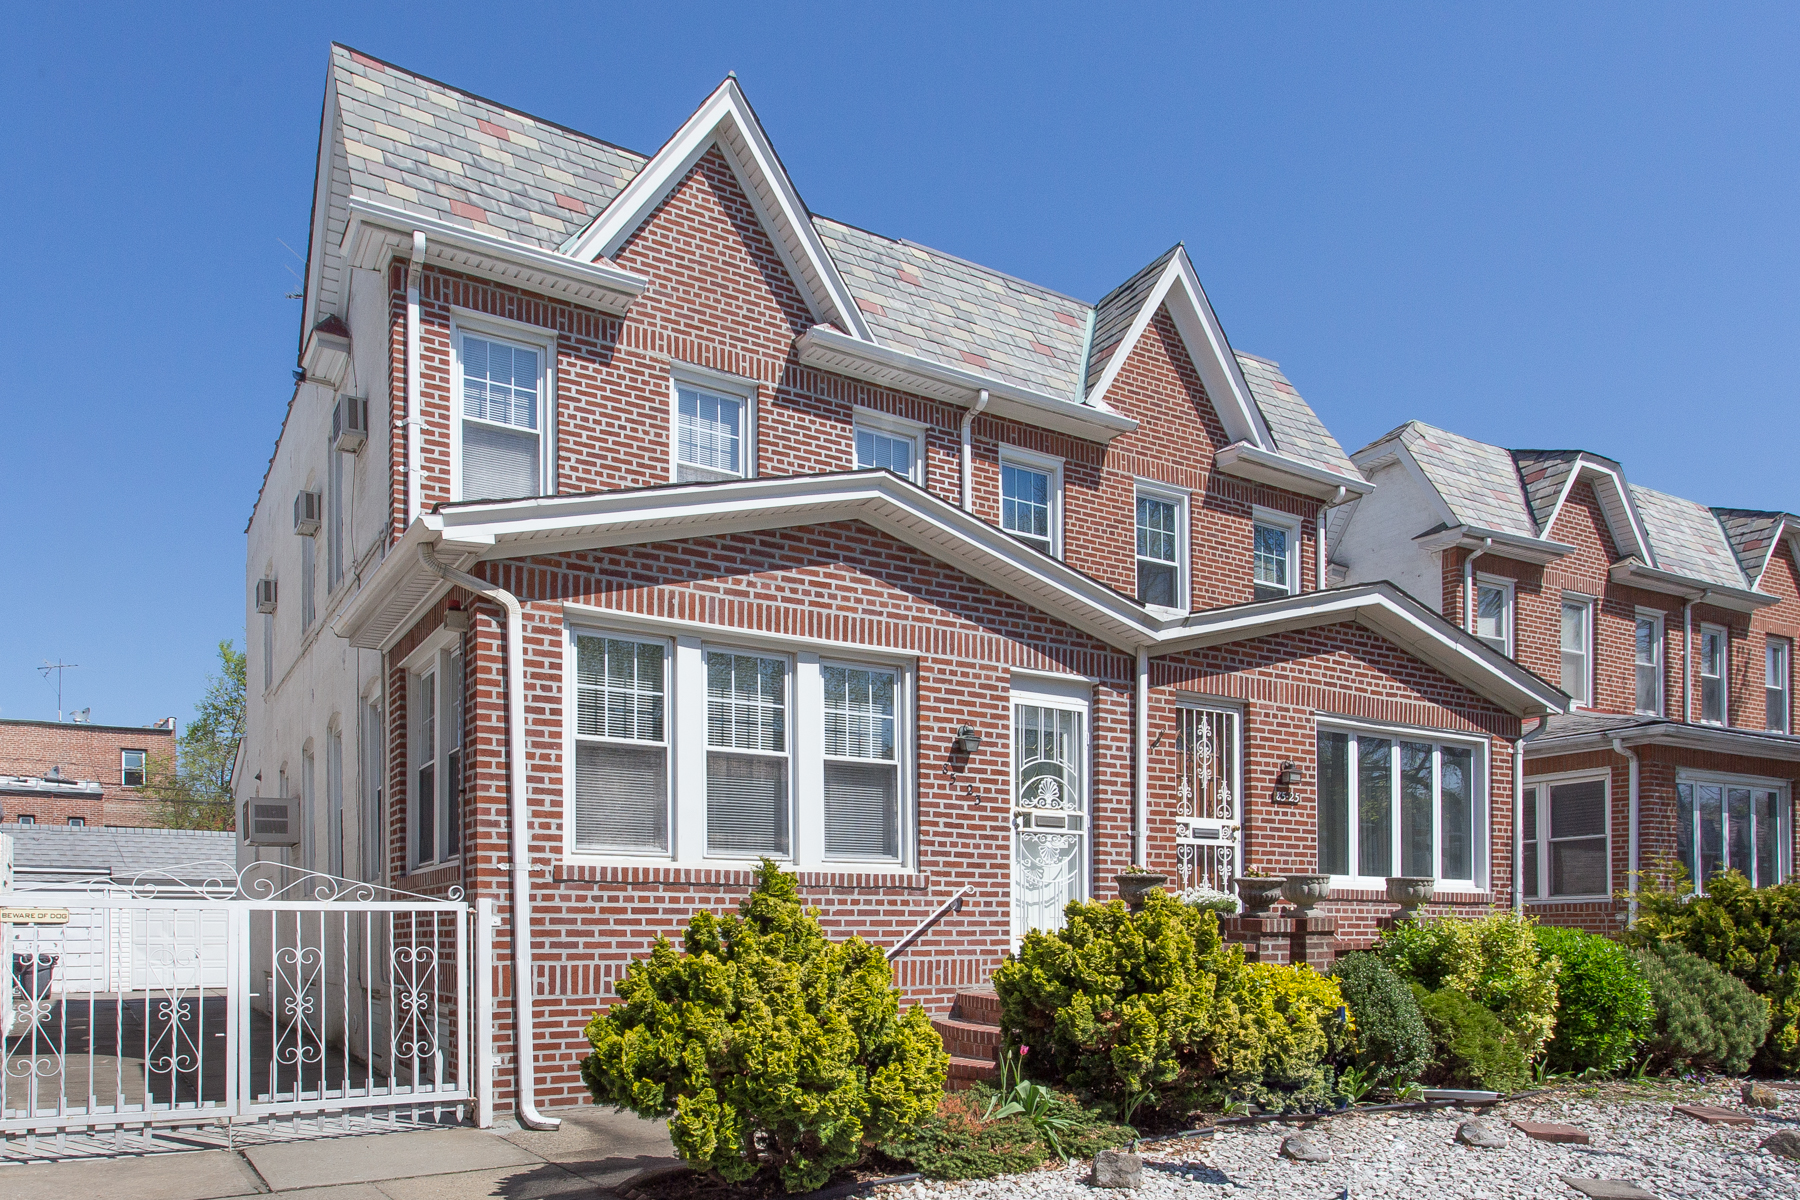 """Single Family Homes for Sale at """"REGO PARK GEM"""" 85-23 67th Drive, Rego Park, New York 11374 United States"""